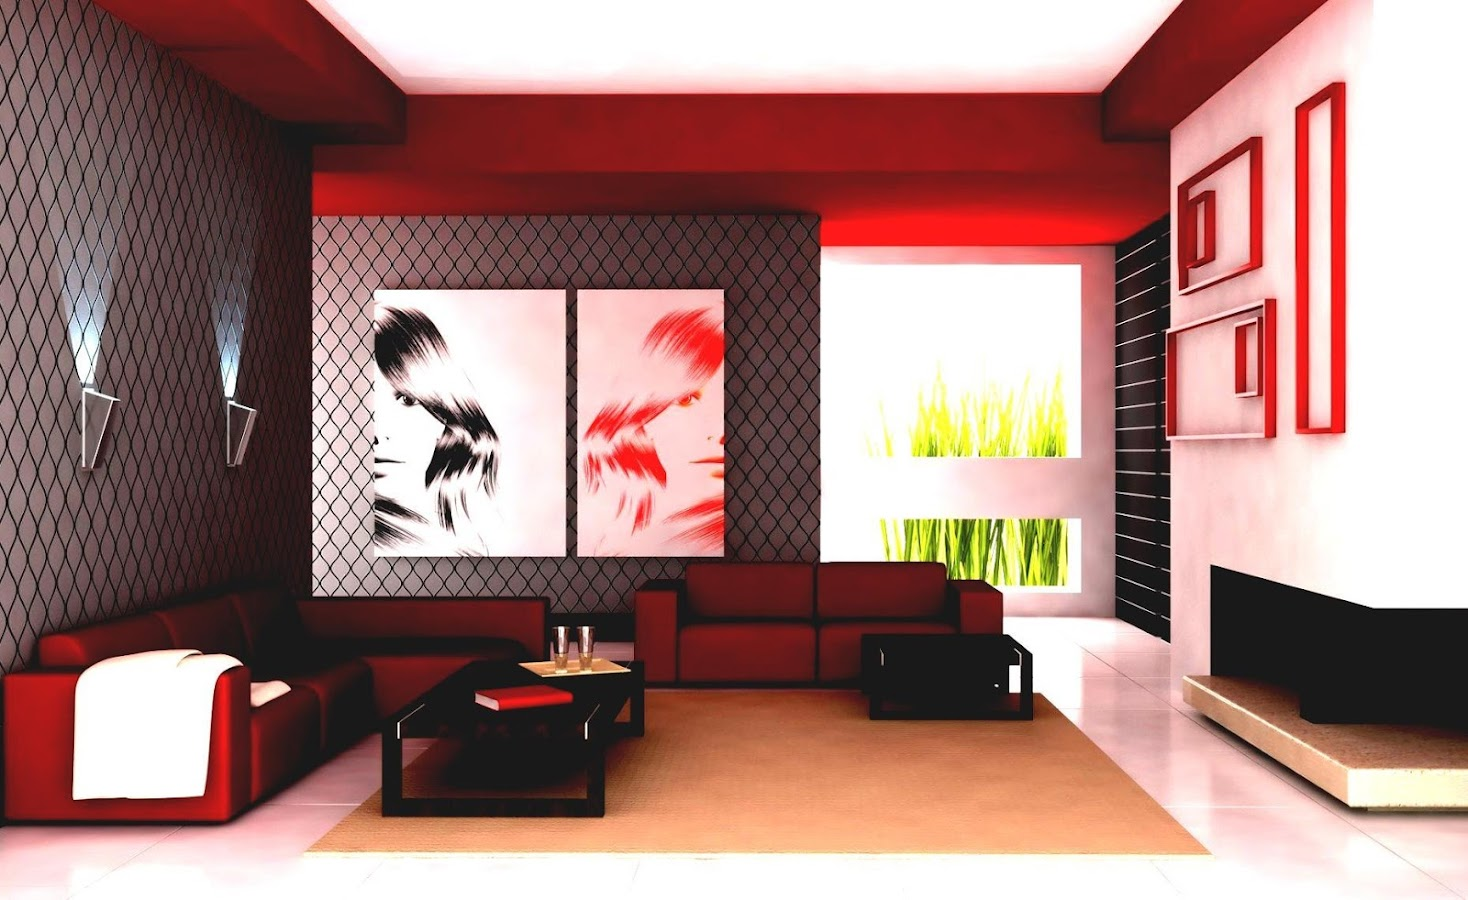 House interior design hall - Planner 3d Interior Design Screenshot